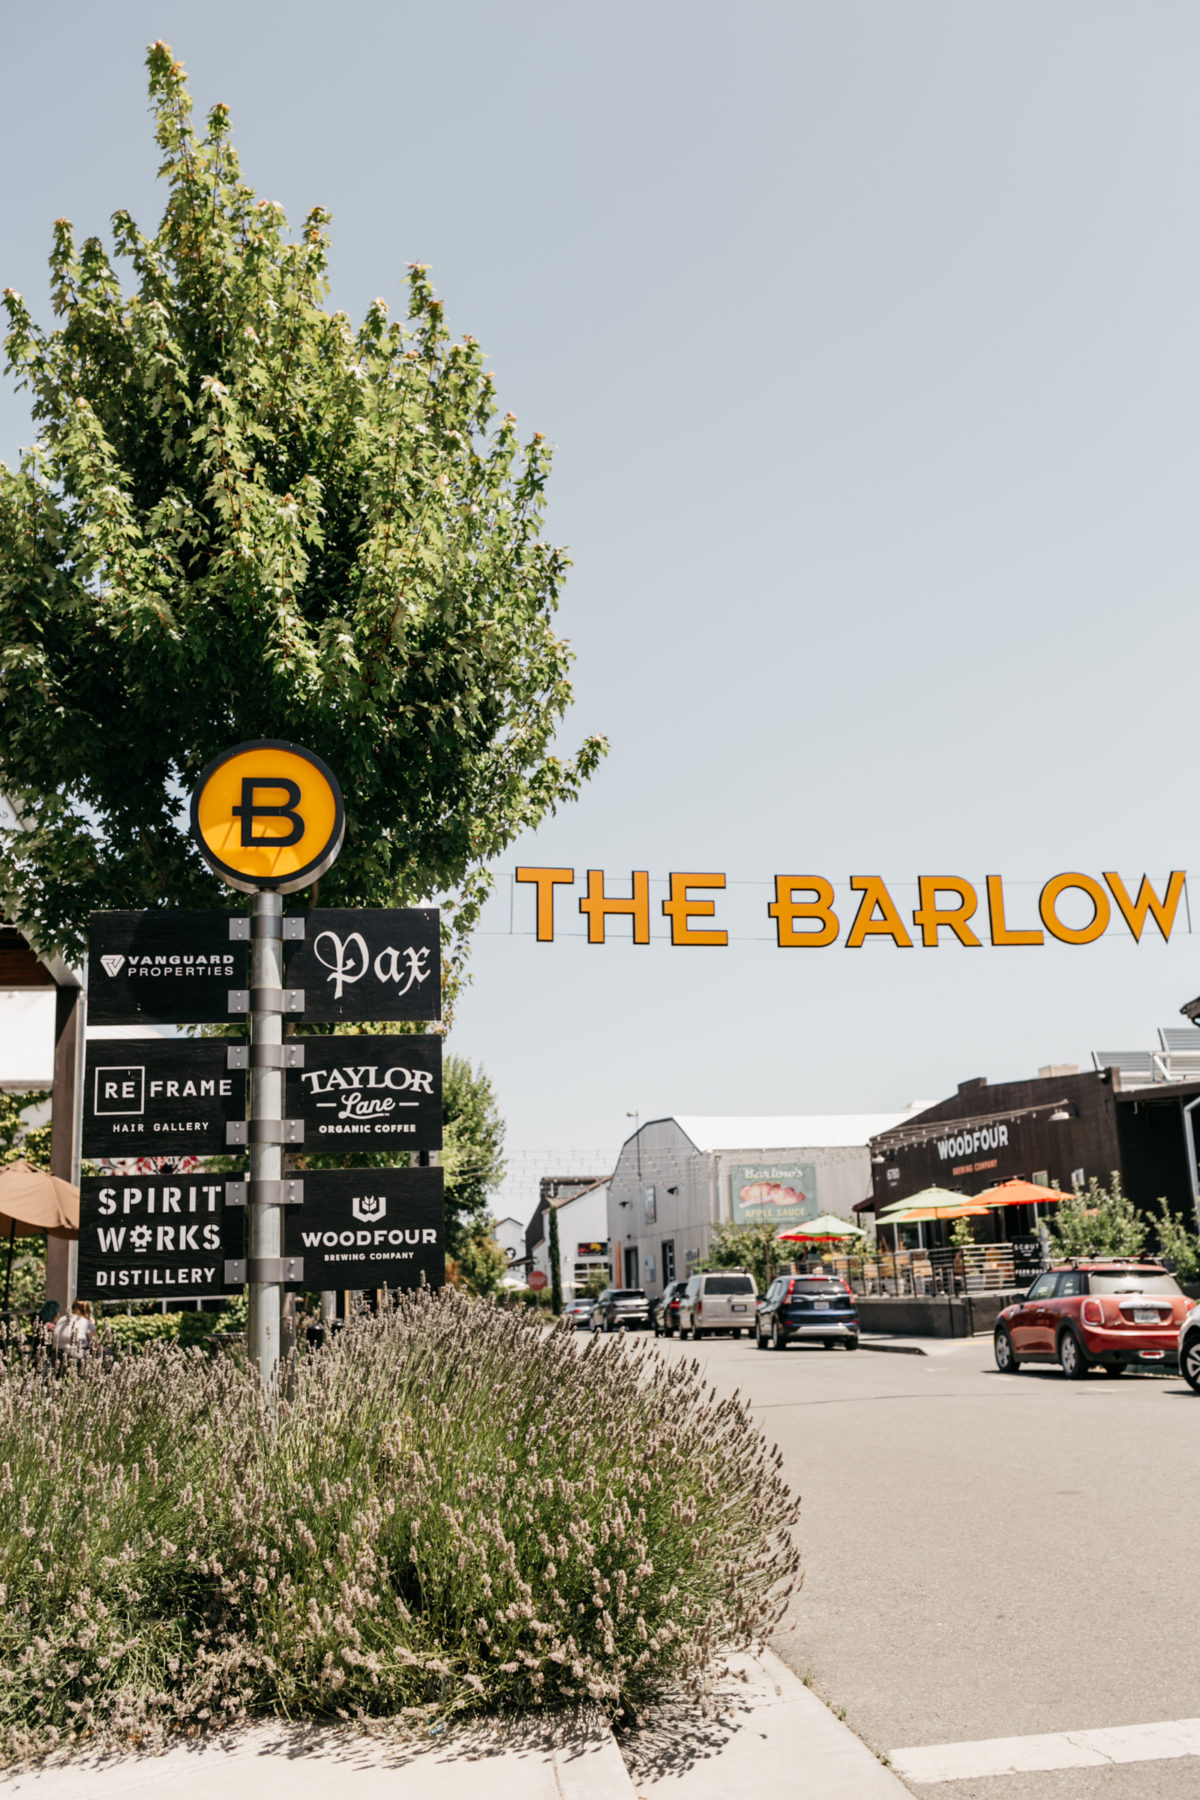 The Barlow Sonoma country travel guide